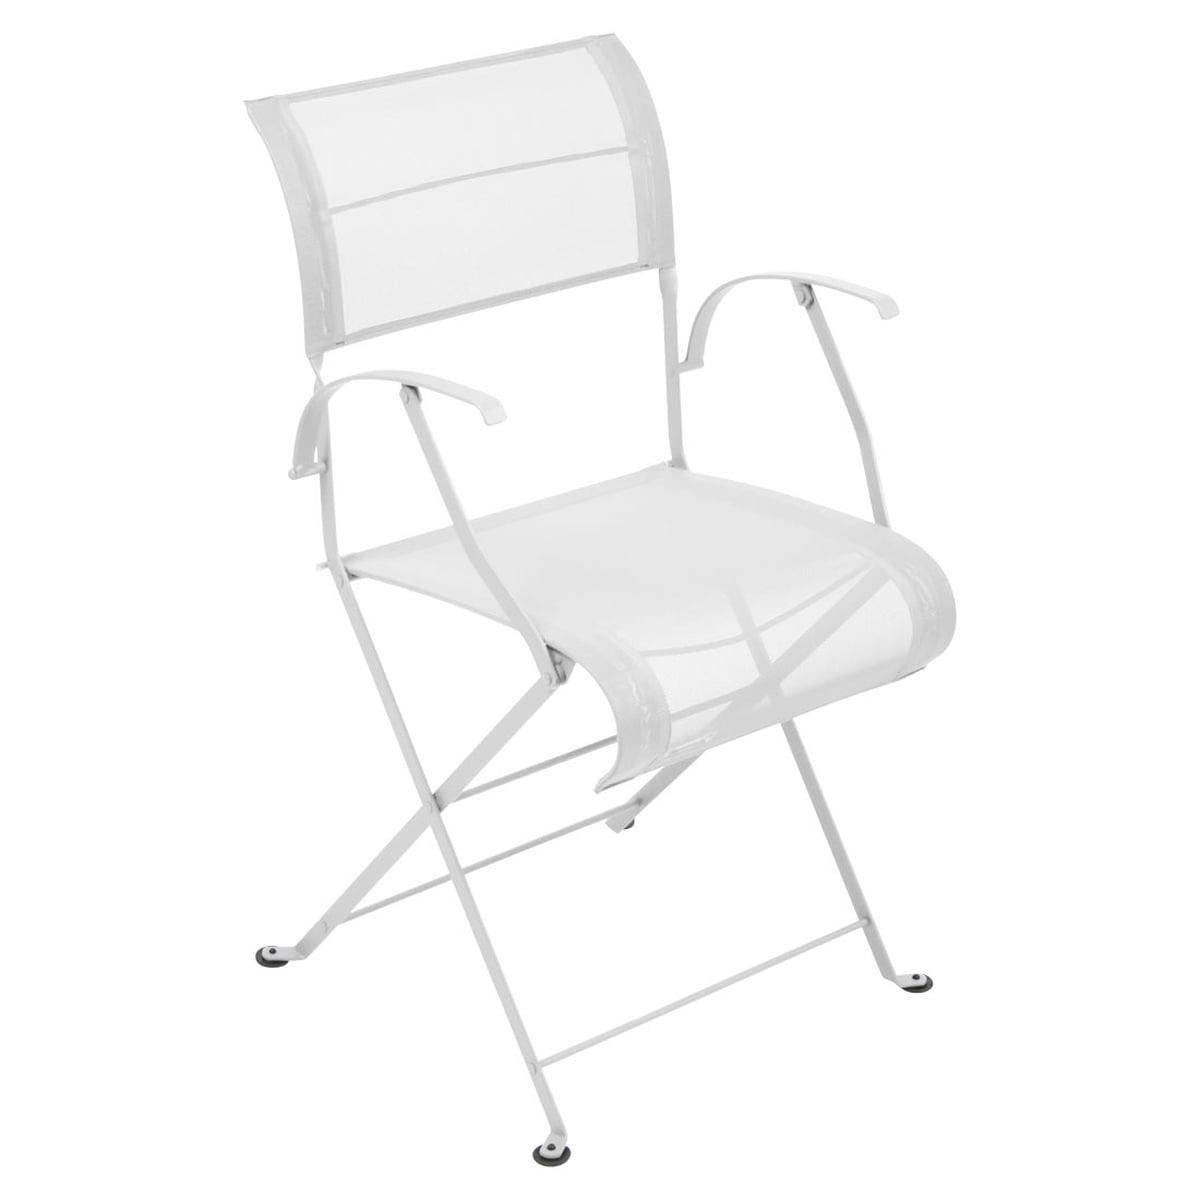 Dune Folding Armchair By Fermob In Cotton White